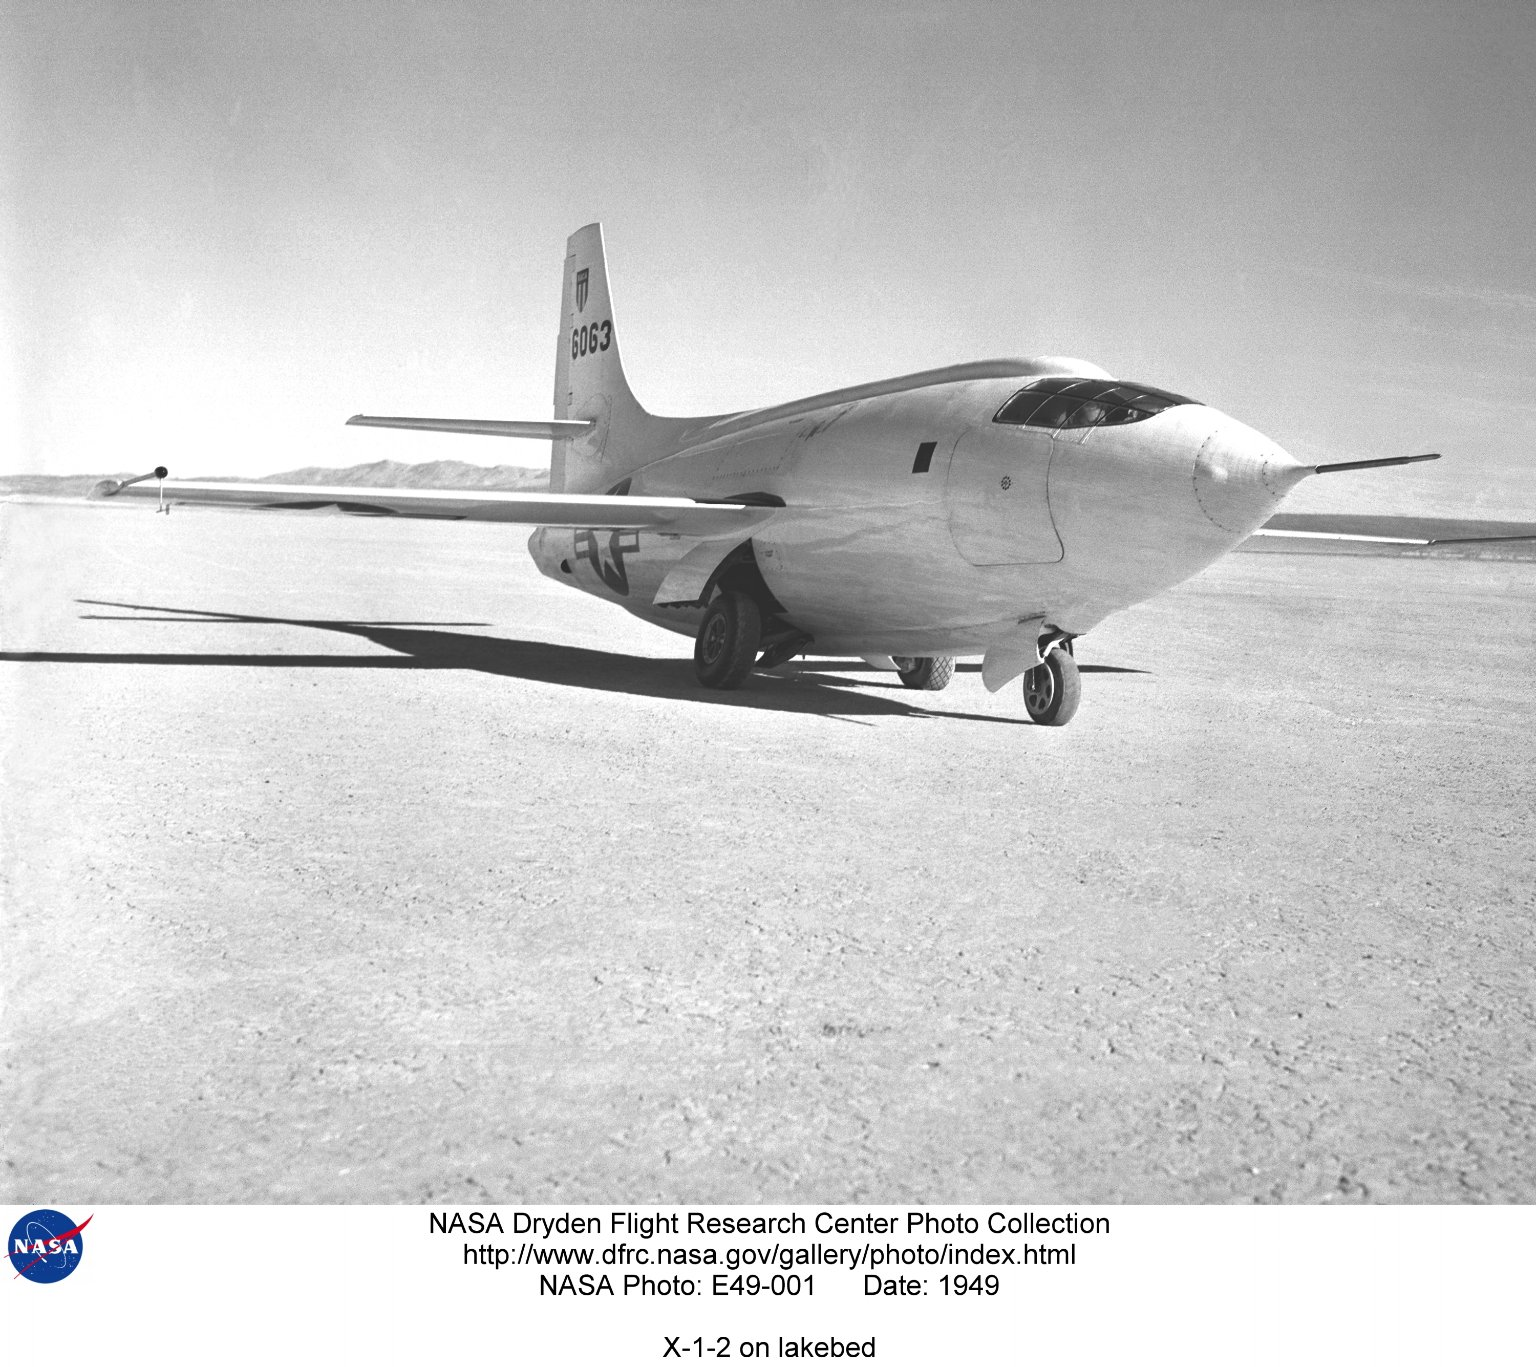 X-1-2 on lakebed